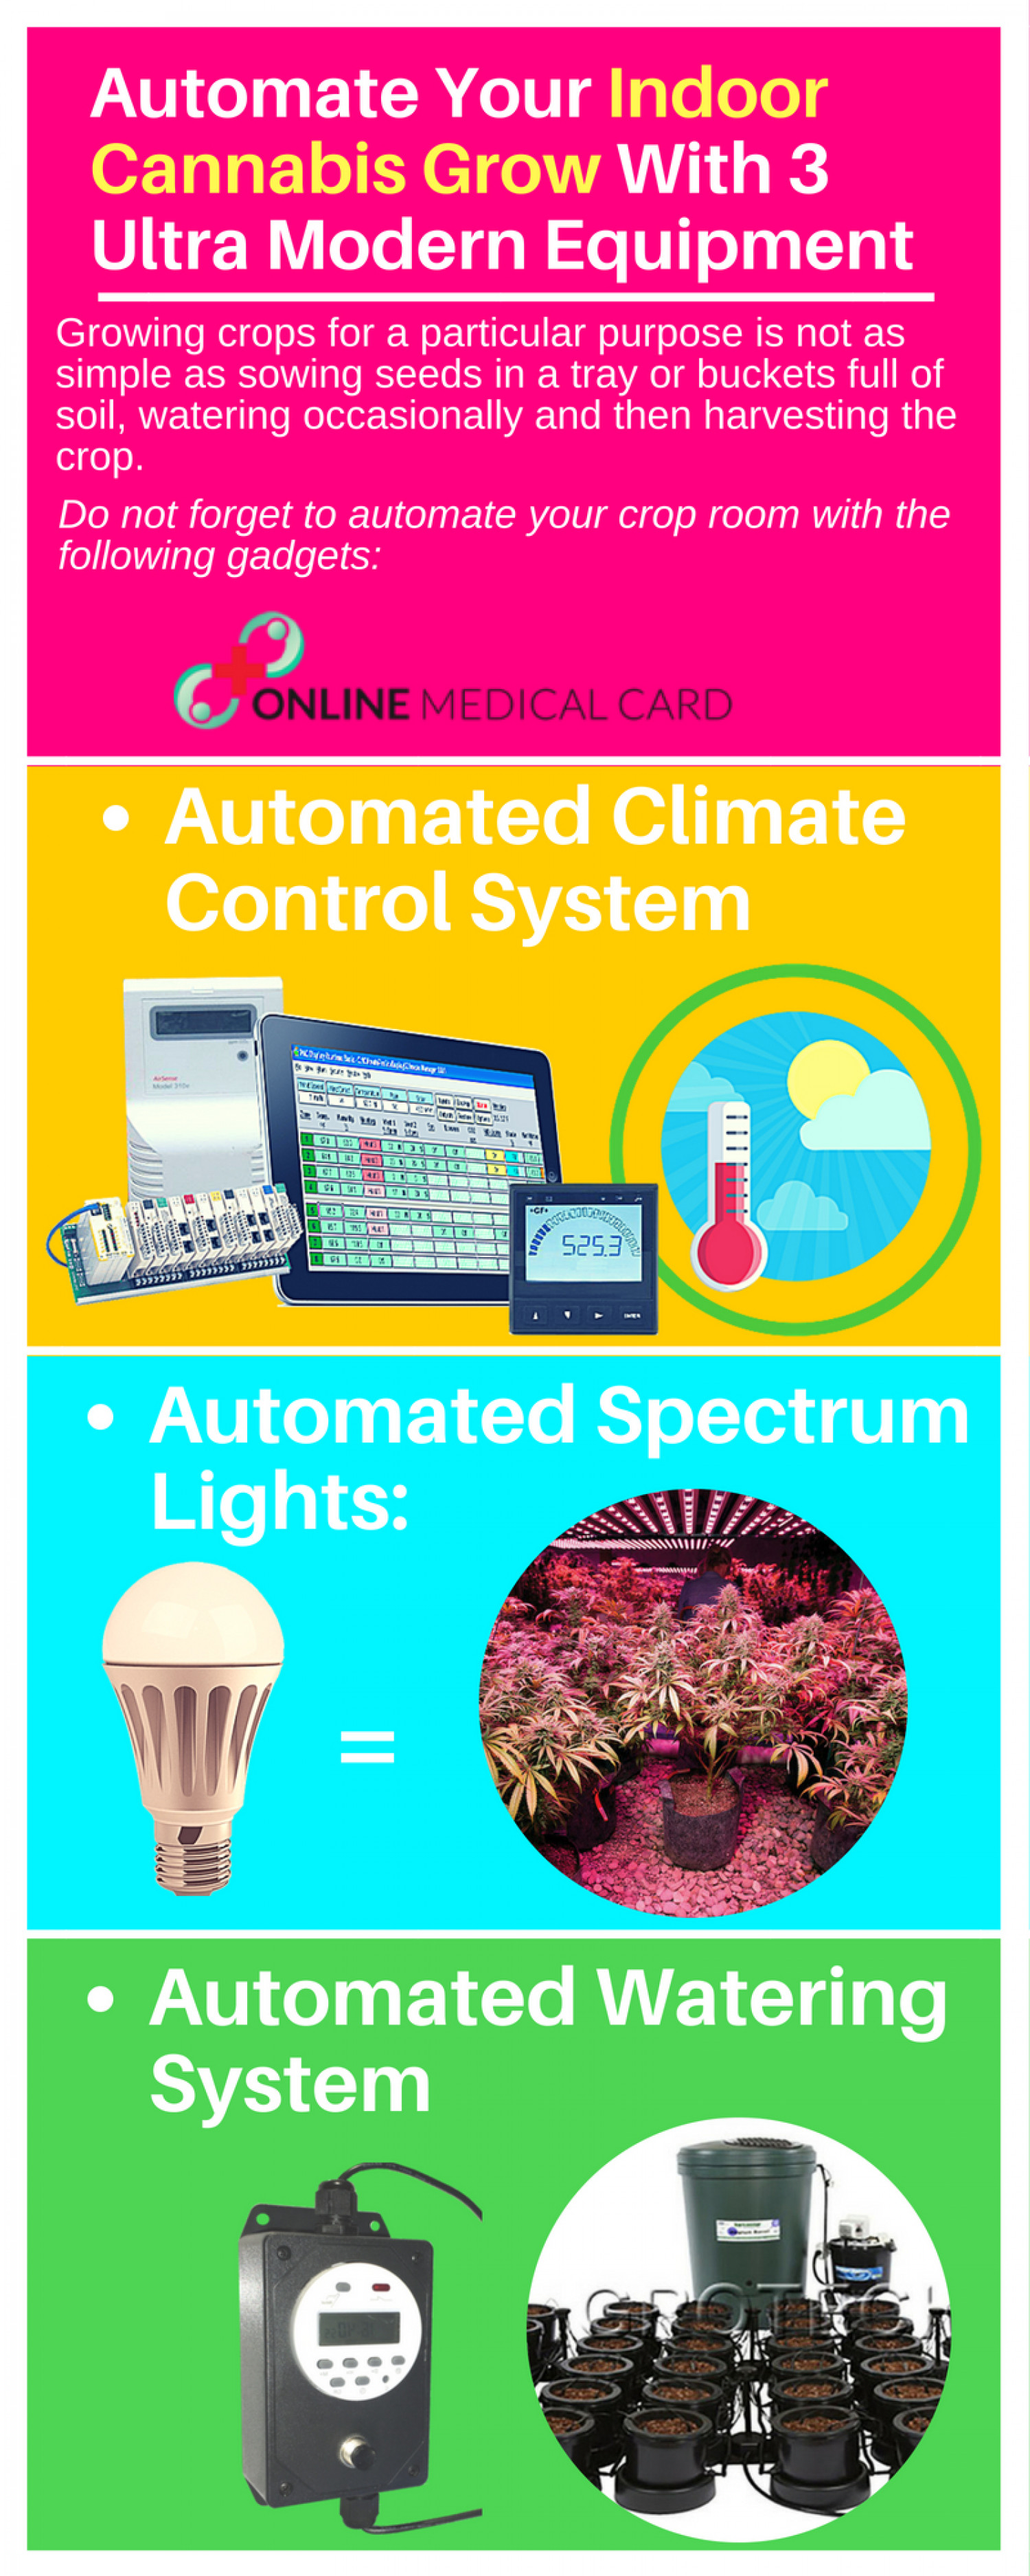 Automate Your Indoor Cannabis Grow With 3 Ultra Modern Equipment Infographic